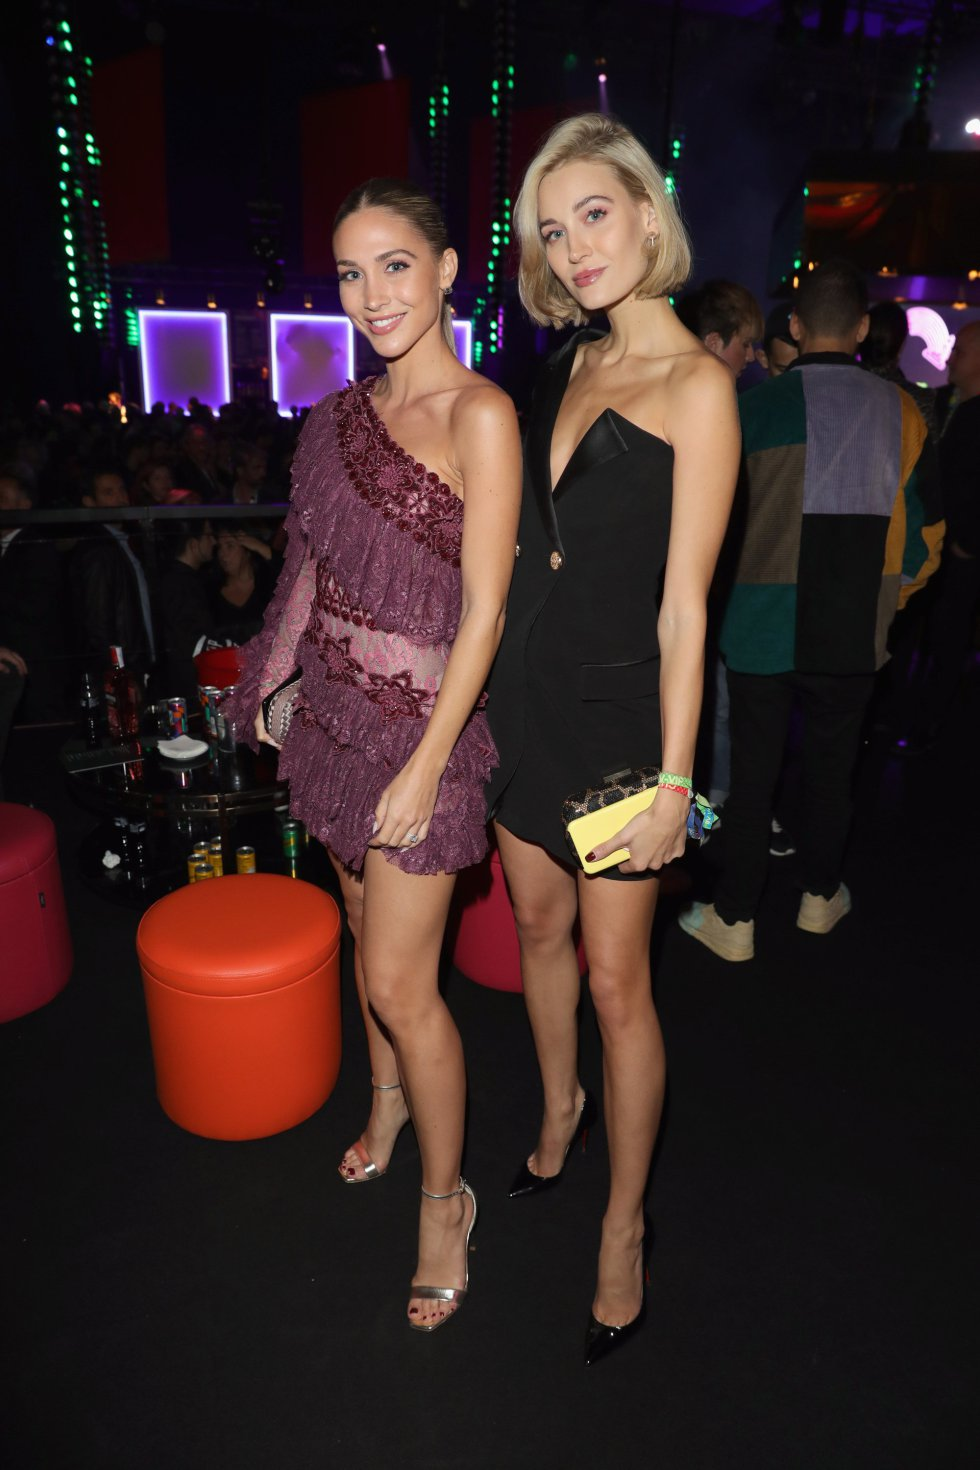 BILBAO, SPAIN - NOVEMBER 04: Ann-Kathrin Gotze and Mandy Bork during the MTV EMAs 2018 after show party at Bilbao Exhibition Centre on November 4, 2018 in Bilbao, Spain.  (Photo by Andreas Rentz/Getty Images for MTV)